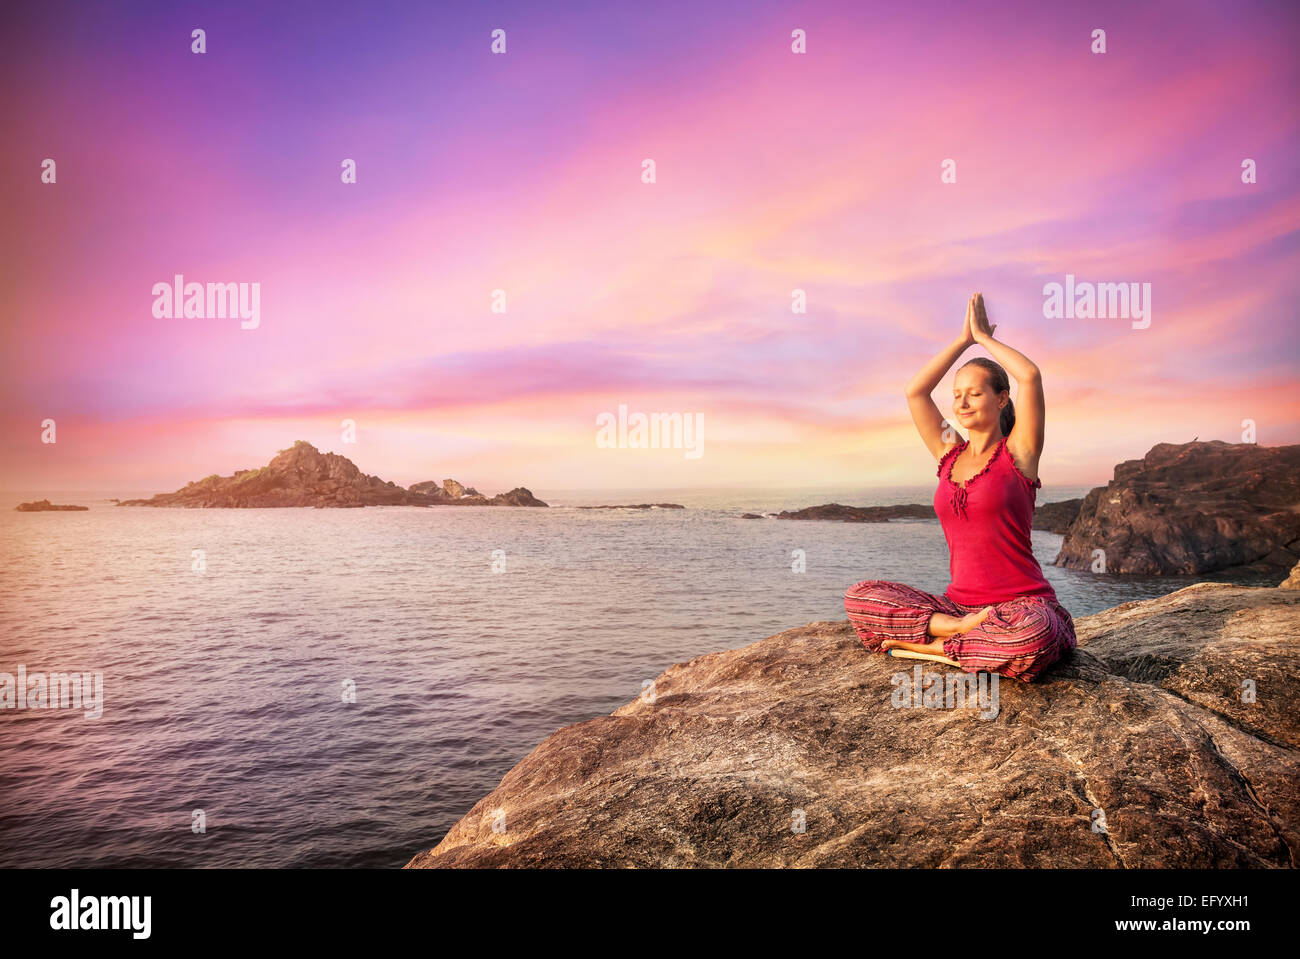 Woman doing meditation in red costume on the stone near the ocean in Gokarna, Karnataka, India - Stock Image